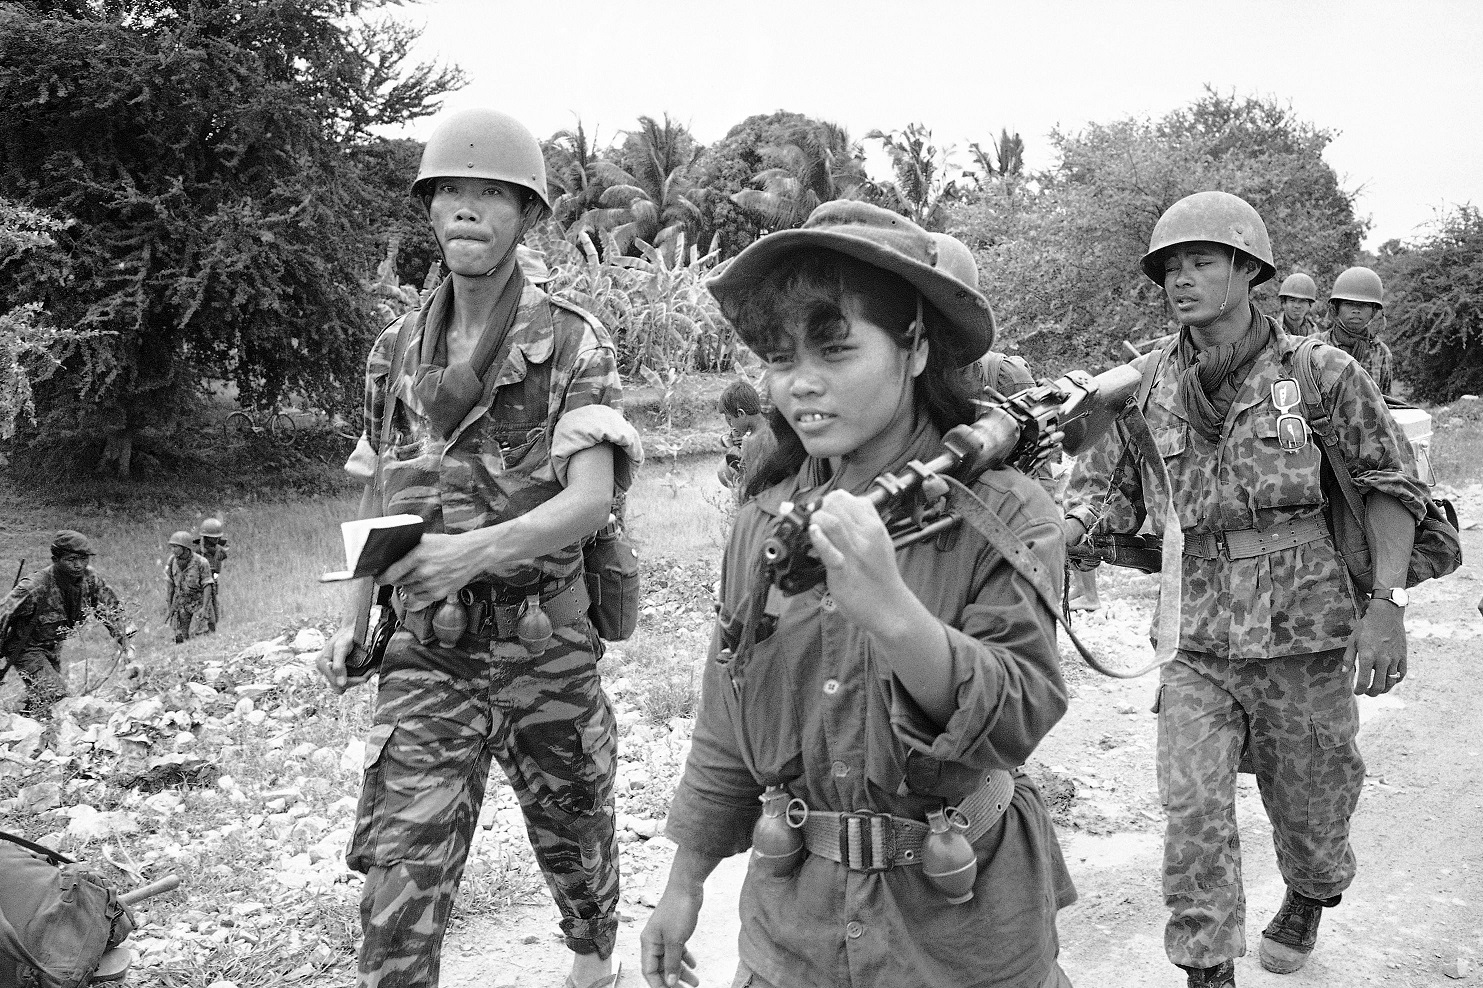 did the vietnam war change america role in the world American women in world war ii women's impact during wwii in the workforce and military (fall 2012) gender roles had changed in the modern world.